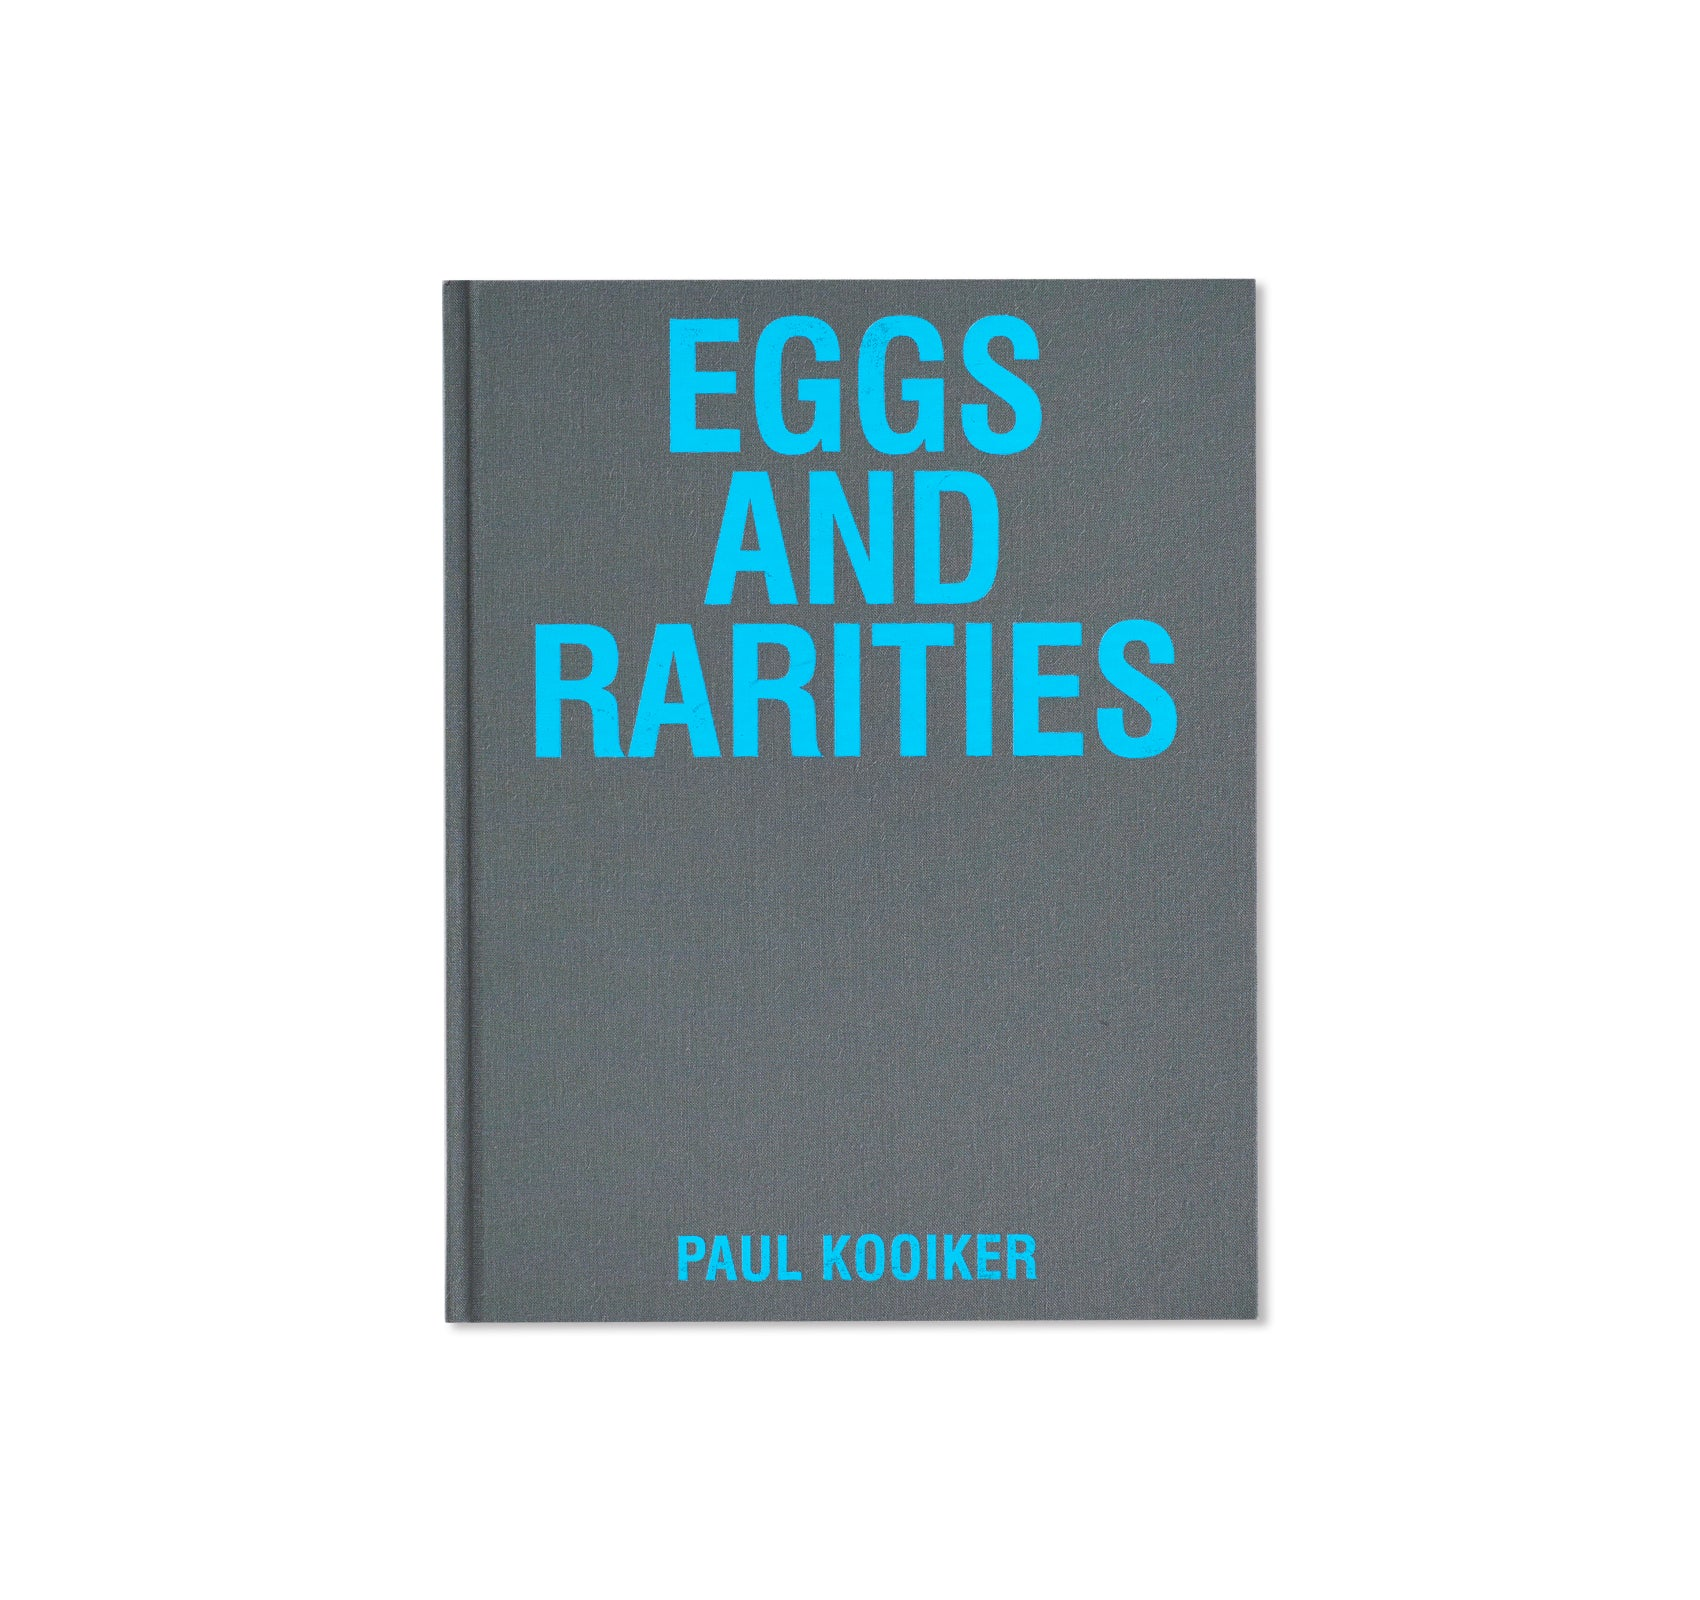 EGGS AND RARITIES by Paul Kooiker